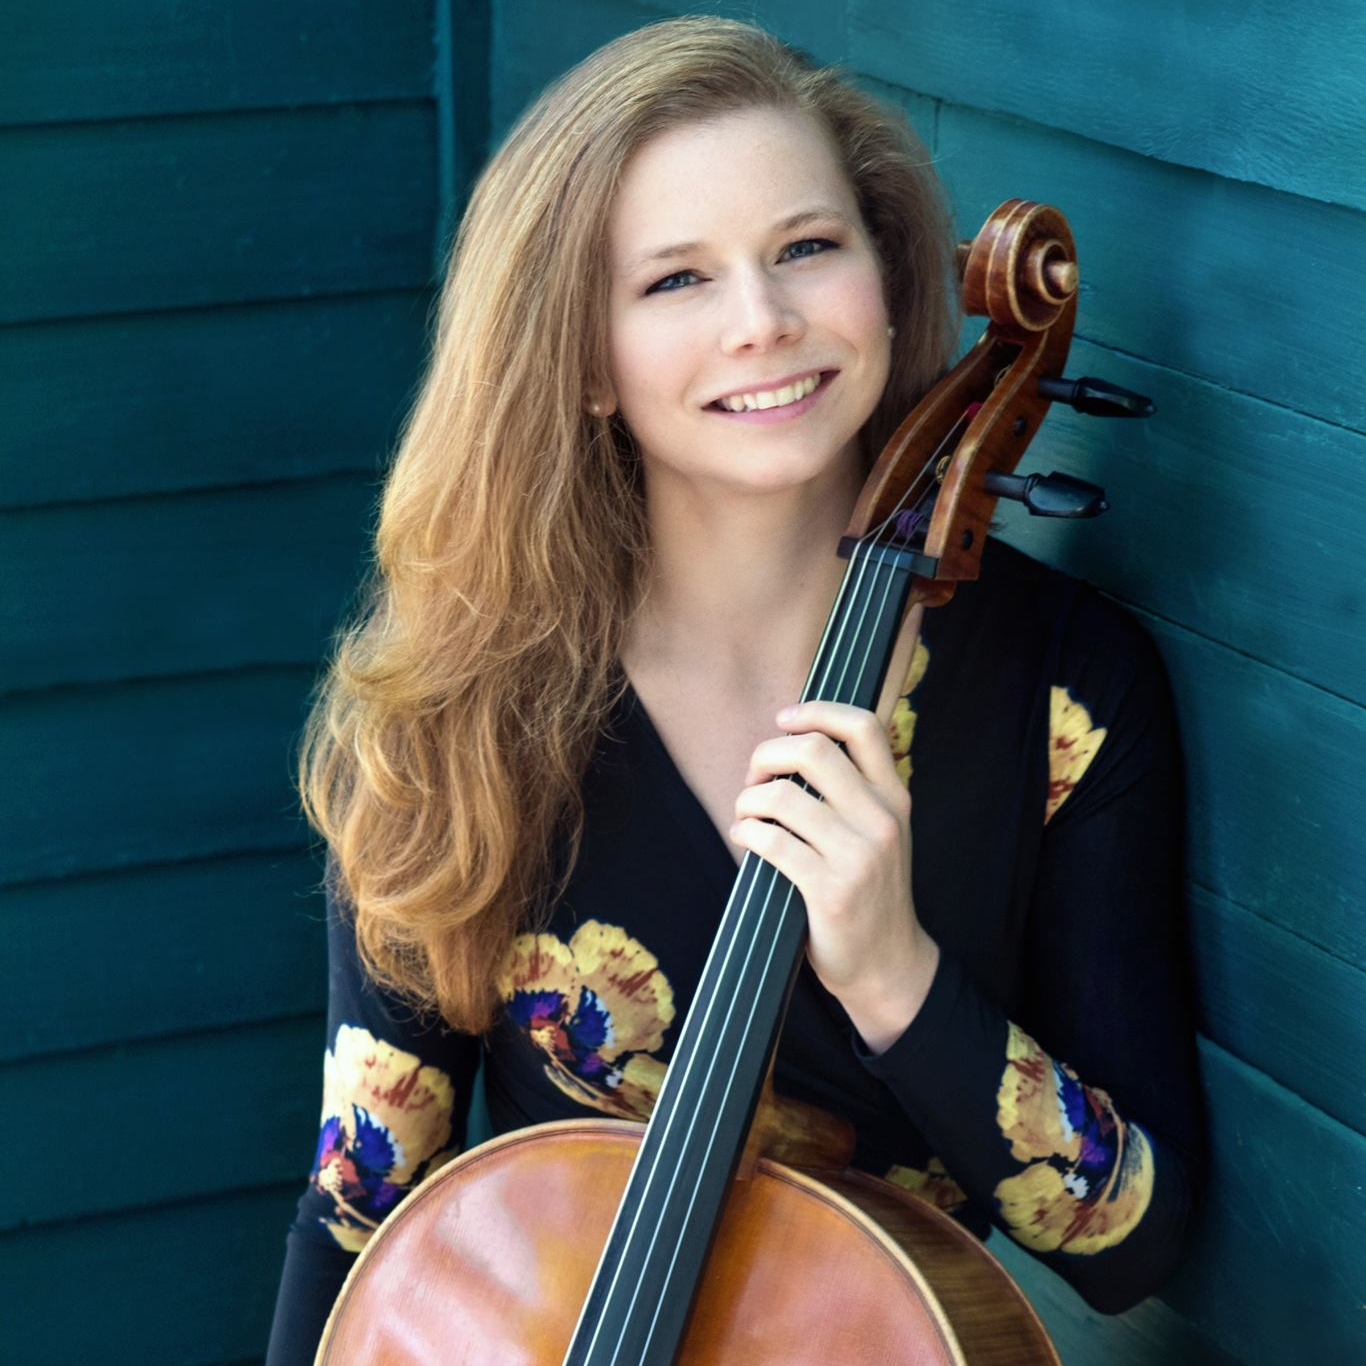 Molly Arnoson - Purchase Conservatory of Music (M.M., P.C.)University of Massachusetts Amherst (B.M.)Luzerne Music Center Cello and Chamber Music FacultyInterSchool Orchestra Symphony Teaching ArtistProfessional musician & music educator